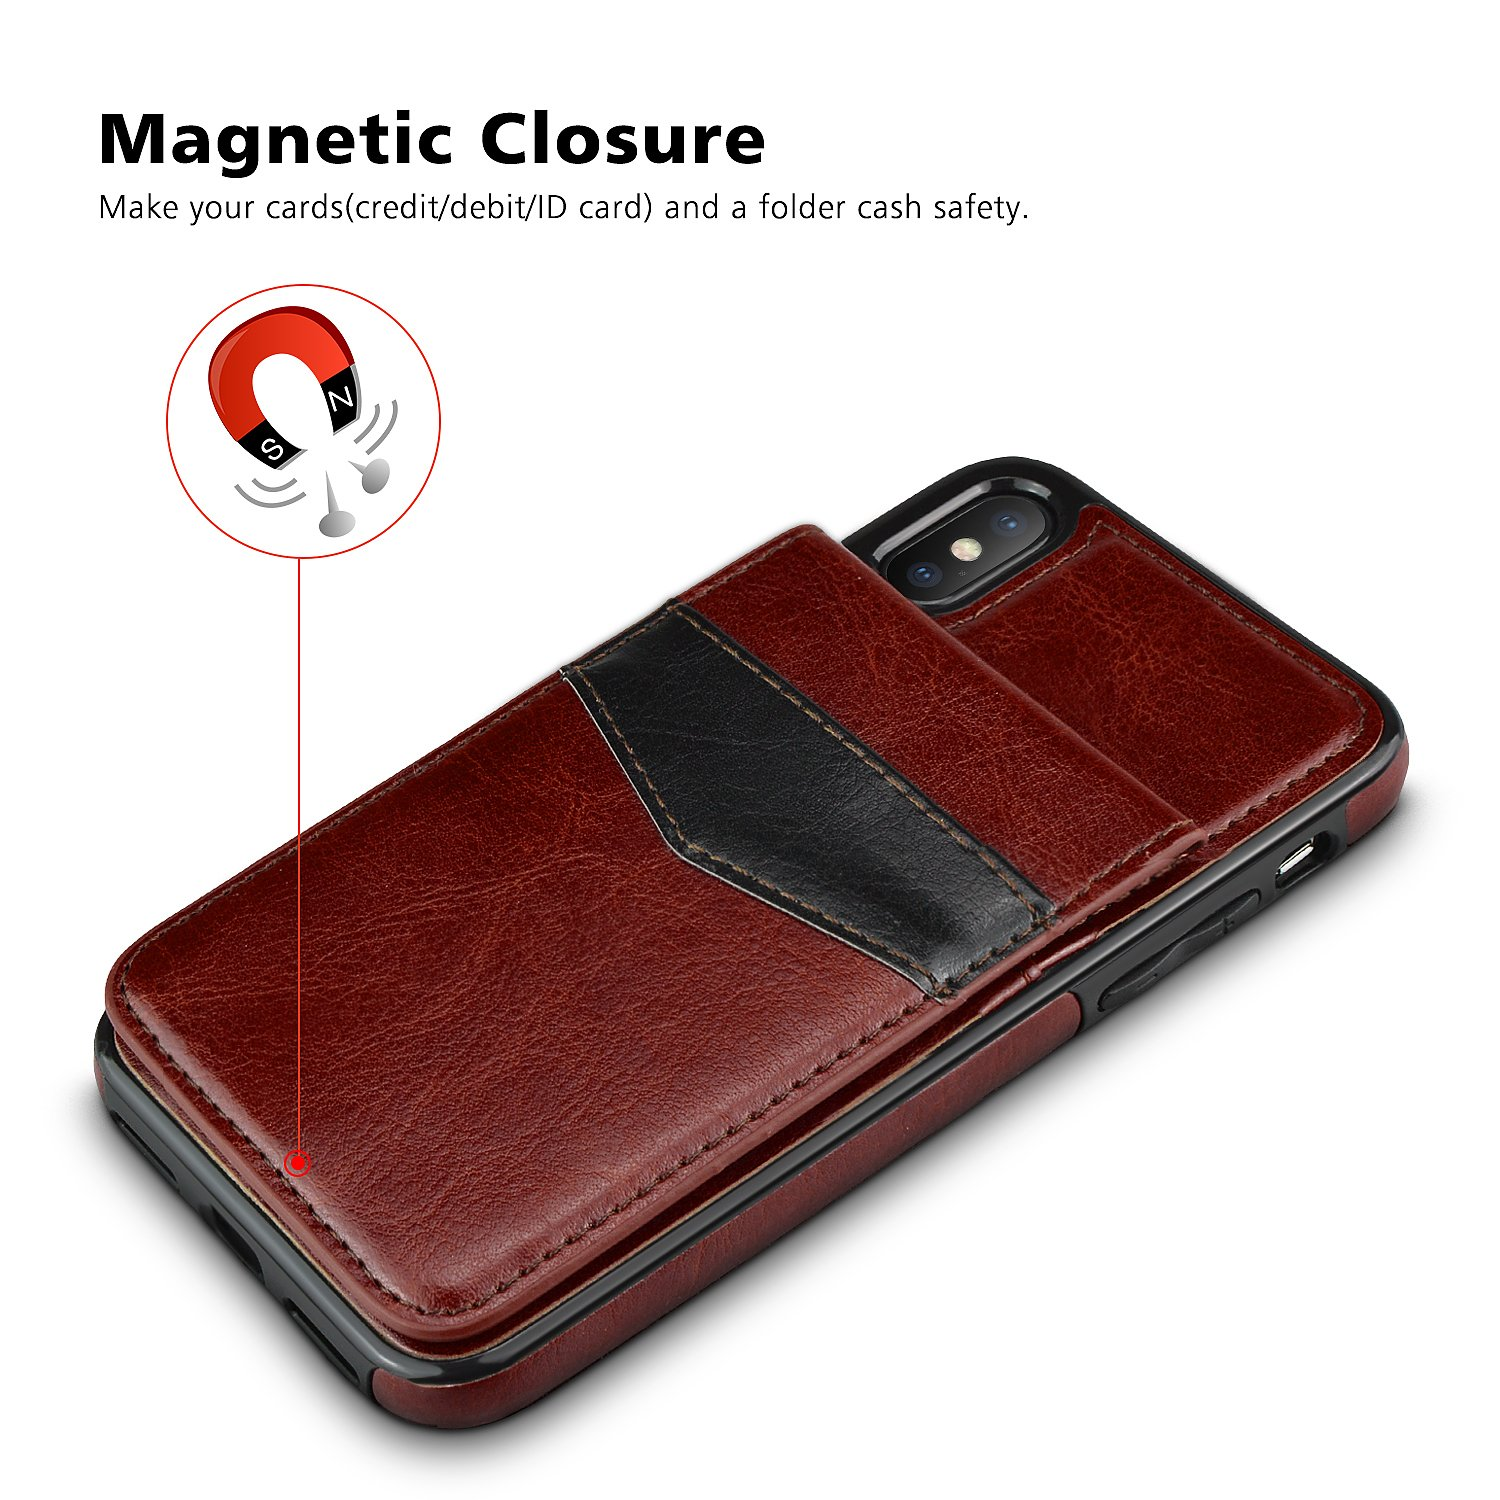 iPhone X Case, iPhone X Card Holder Case, LuckyBaby Premium Leather Folio Flip iPhone X Wallet Case with Credit Card Slots Shock-Absorbing Protective Case for iPhone X / iPhone 10 (2017) - Brown by LuckyBaby (Image #6)